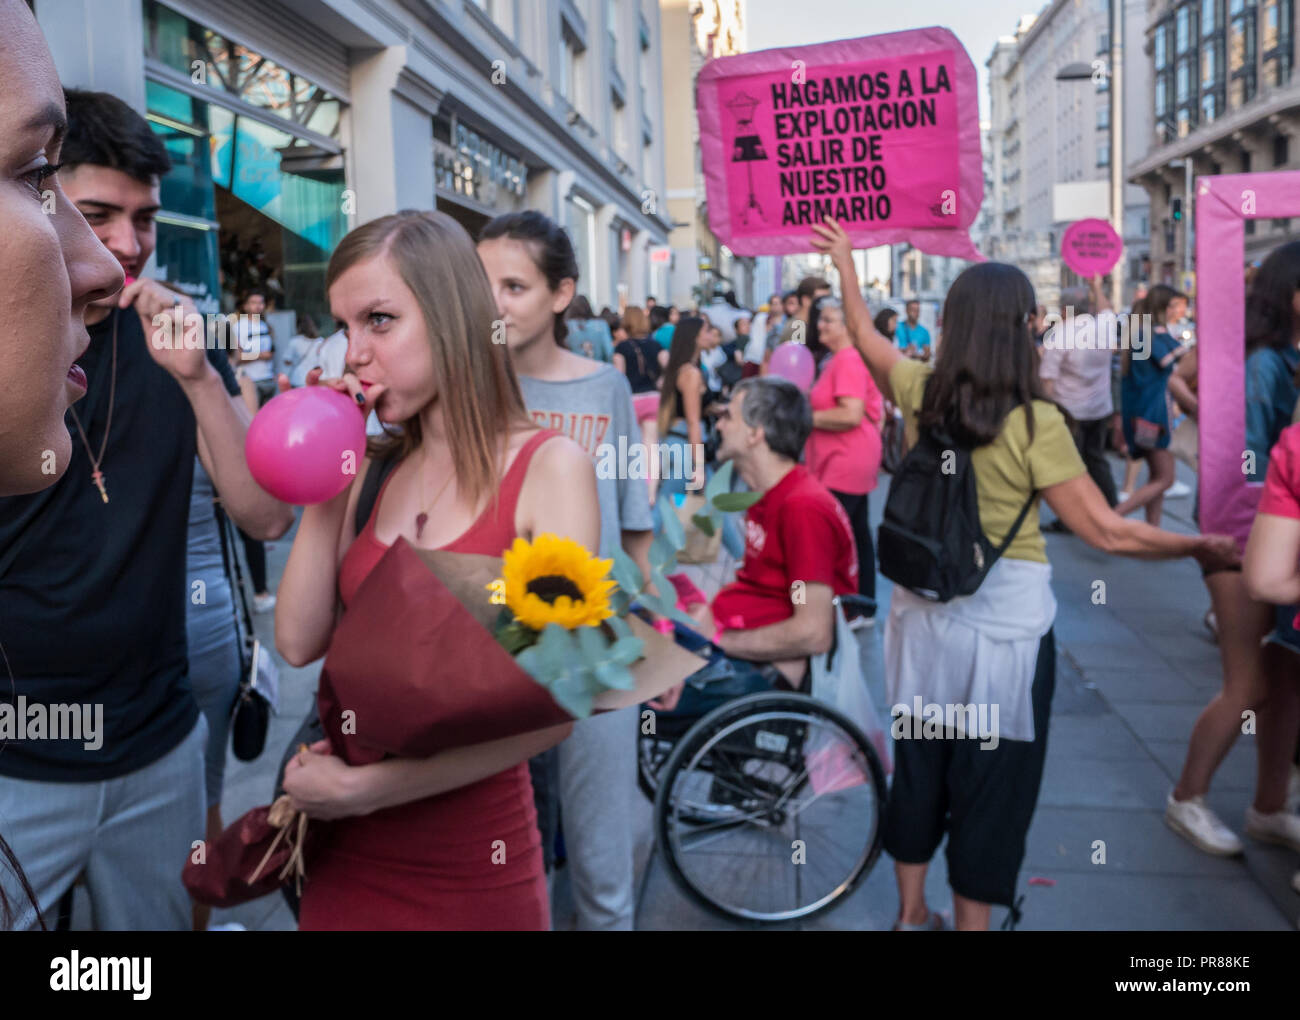 Madrid, Spain. 30 September 2018. A protest action against slavery in fashion industry took place in Gran Vía, the main street of Madrid, consisting of creating awareness around the explotation of people in fashion factories. The organizators gave passers by pink baloons to explode in front of the main comercial shops of the street. Credit: Lora Grigorova/Alamy Live News - Stock Image